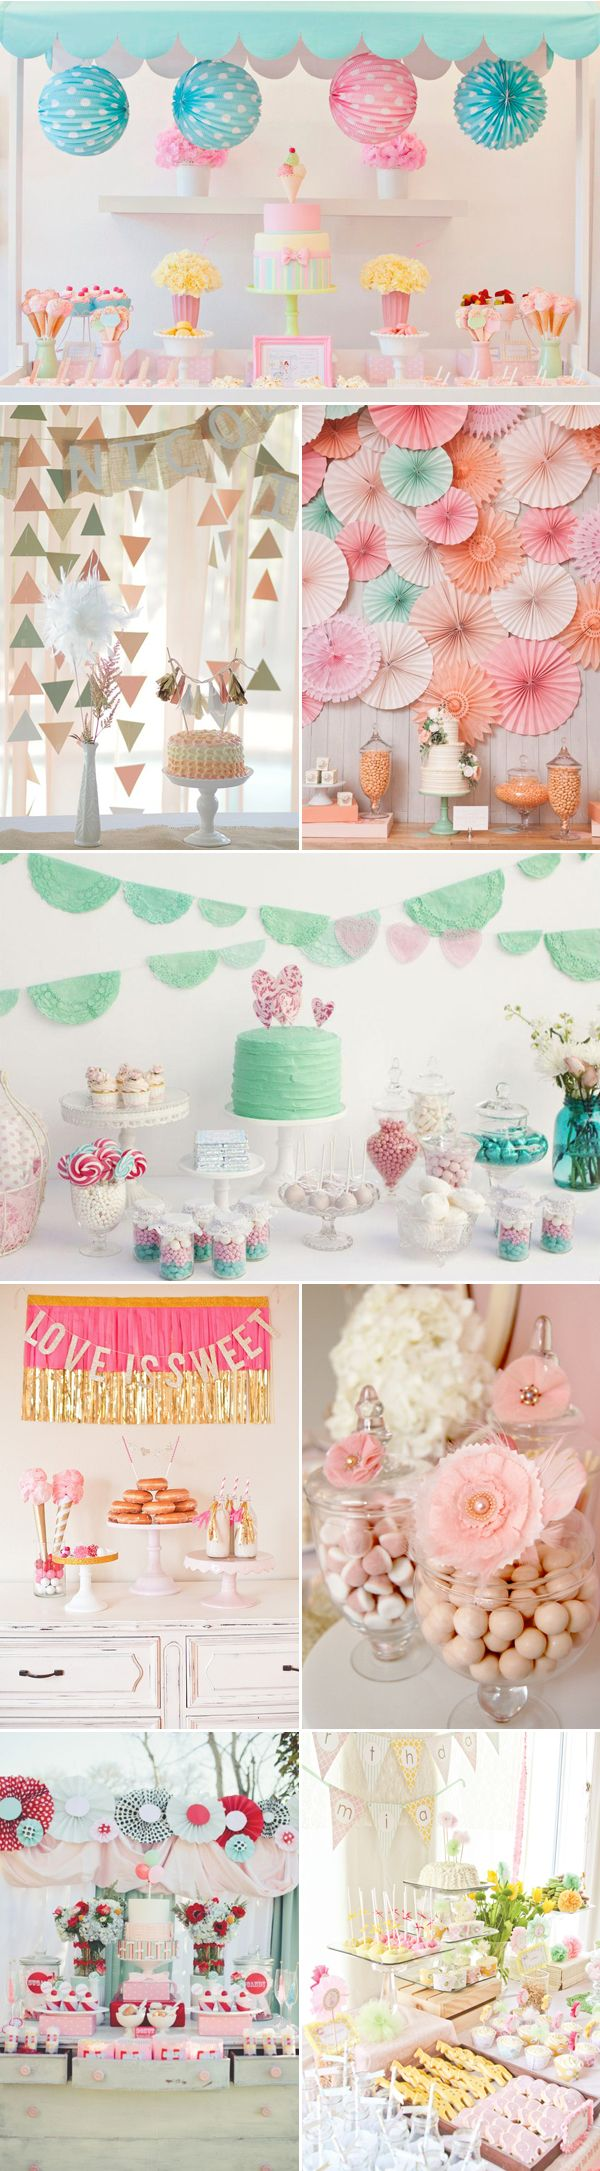 21 Adorable Dessert Table Ideas